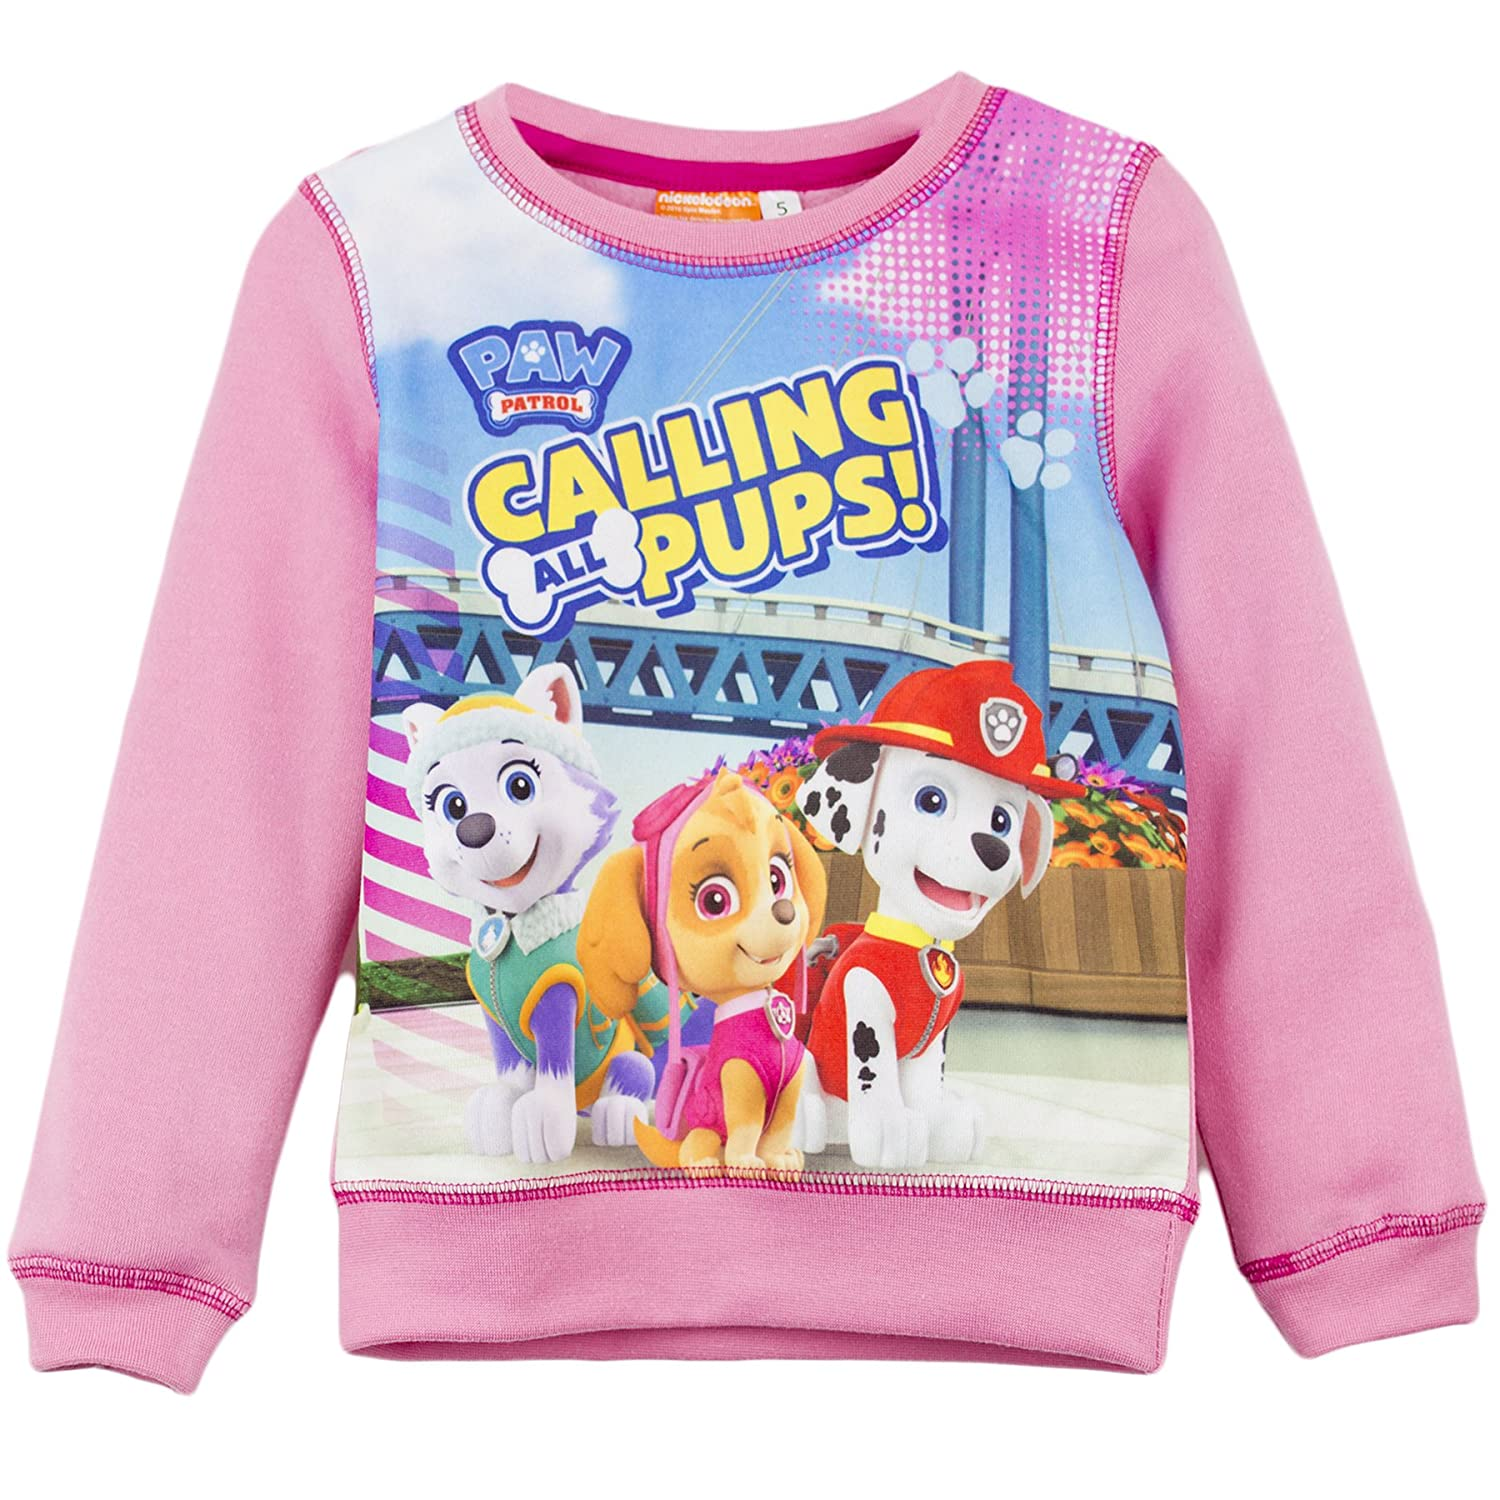 Nickelodeon Paw Patrol Girls Jumper Sweatshirt Long Sleeve Top 2-6 years:  Amazon.co.uk: Clothing